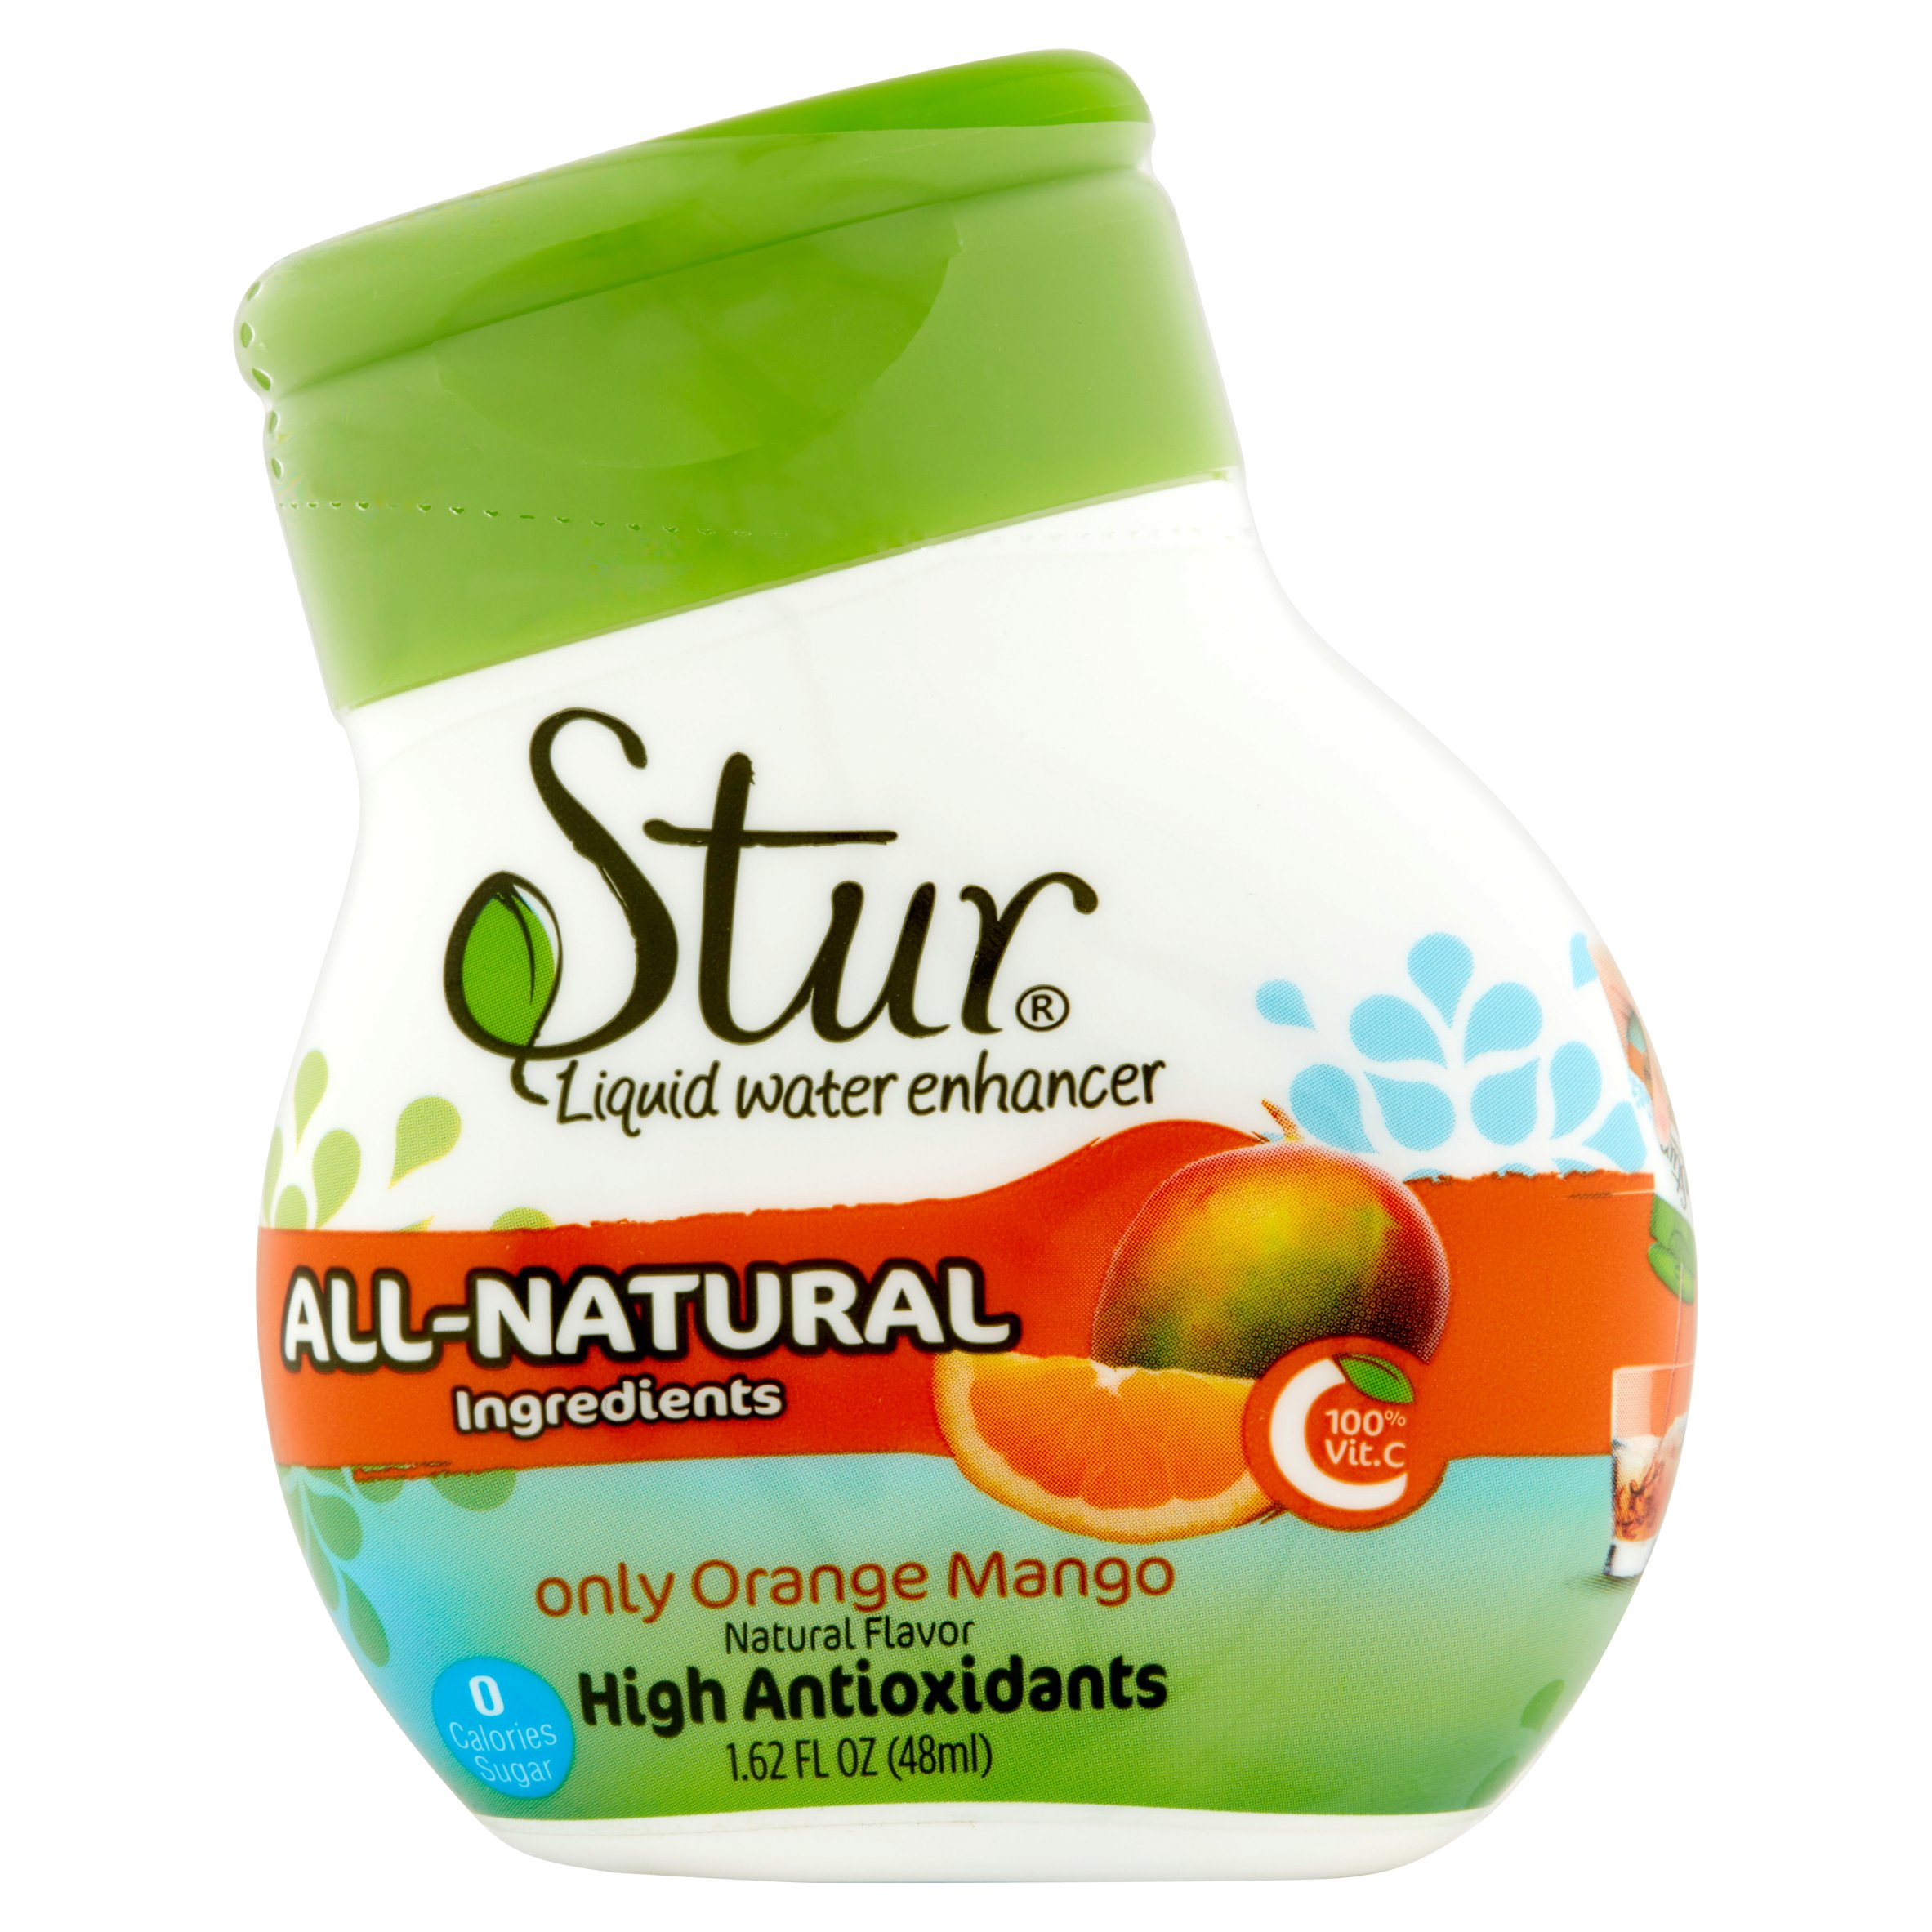 Stur Only Orange Mango Liquid Water Enhancer, 1.62 fl oz, 6 pack